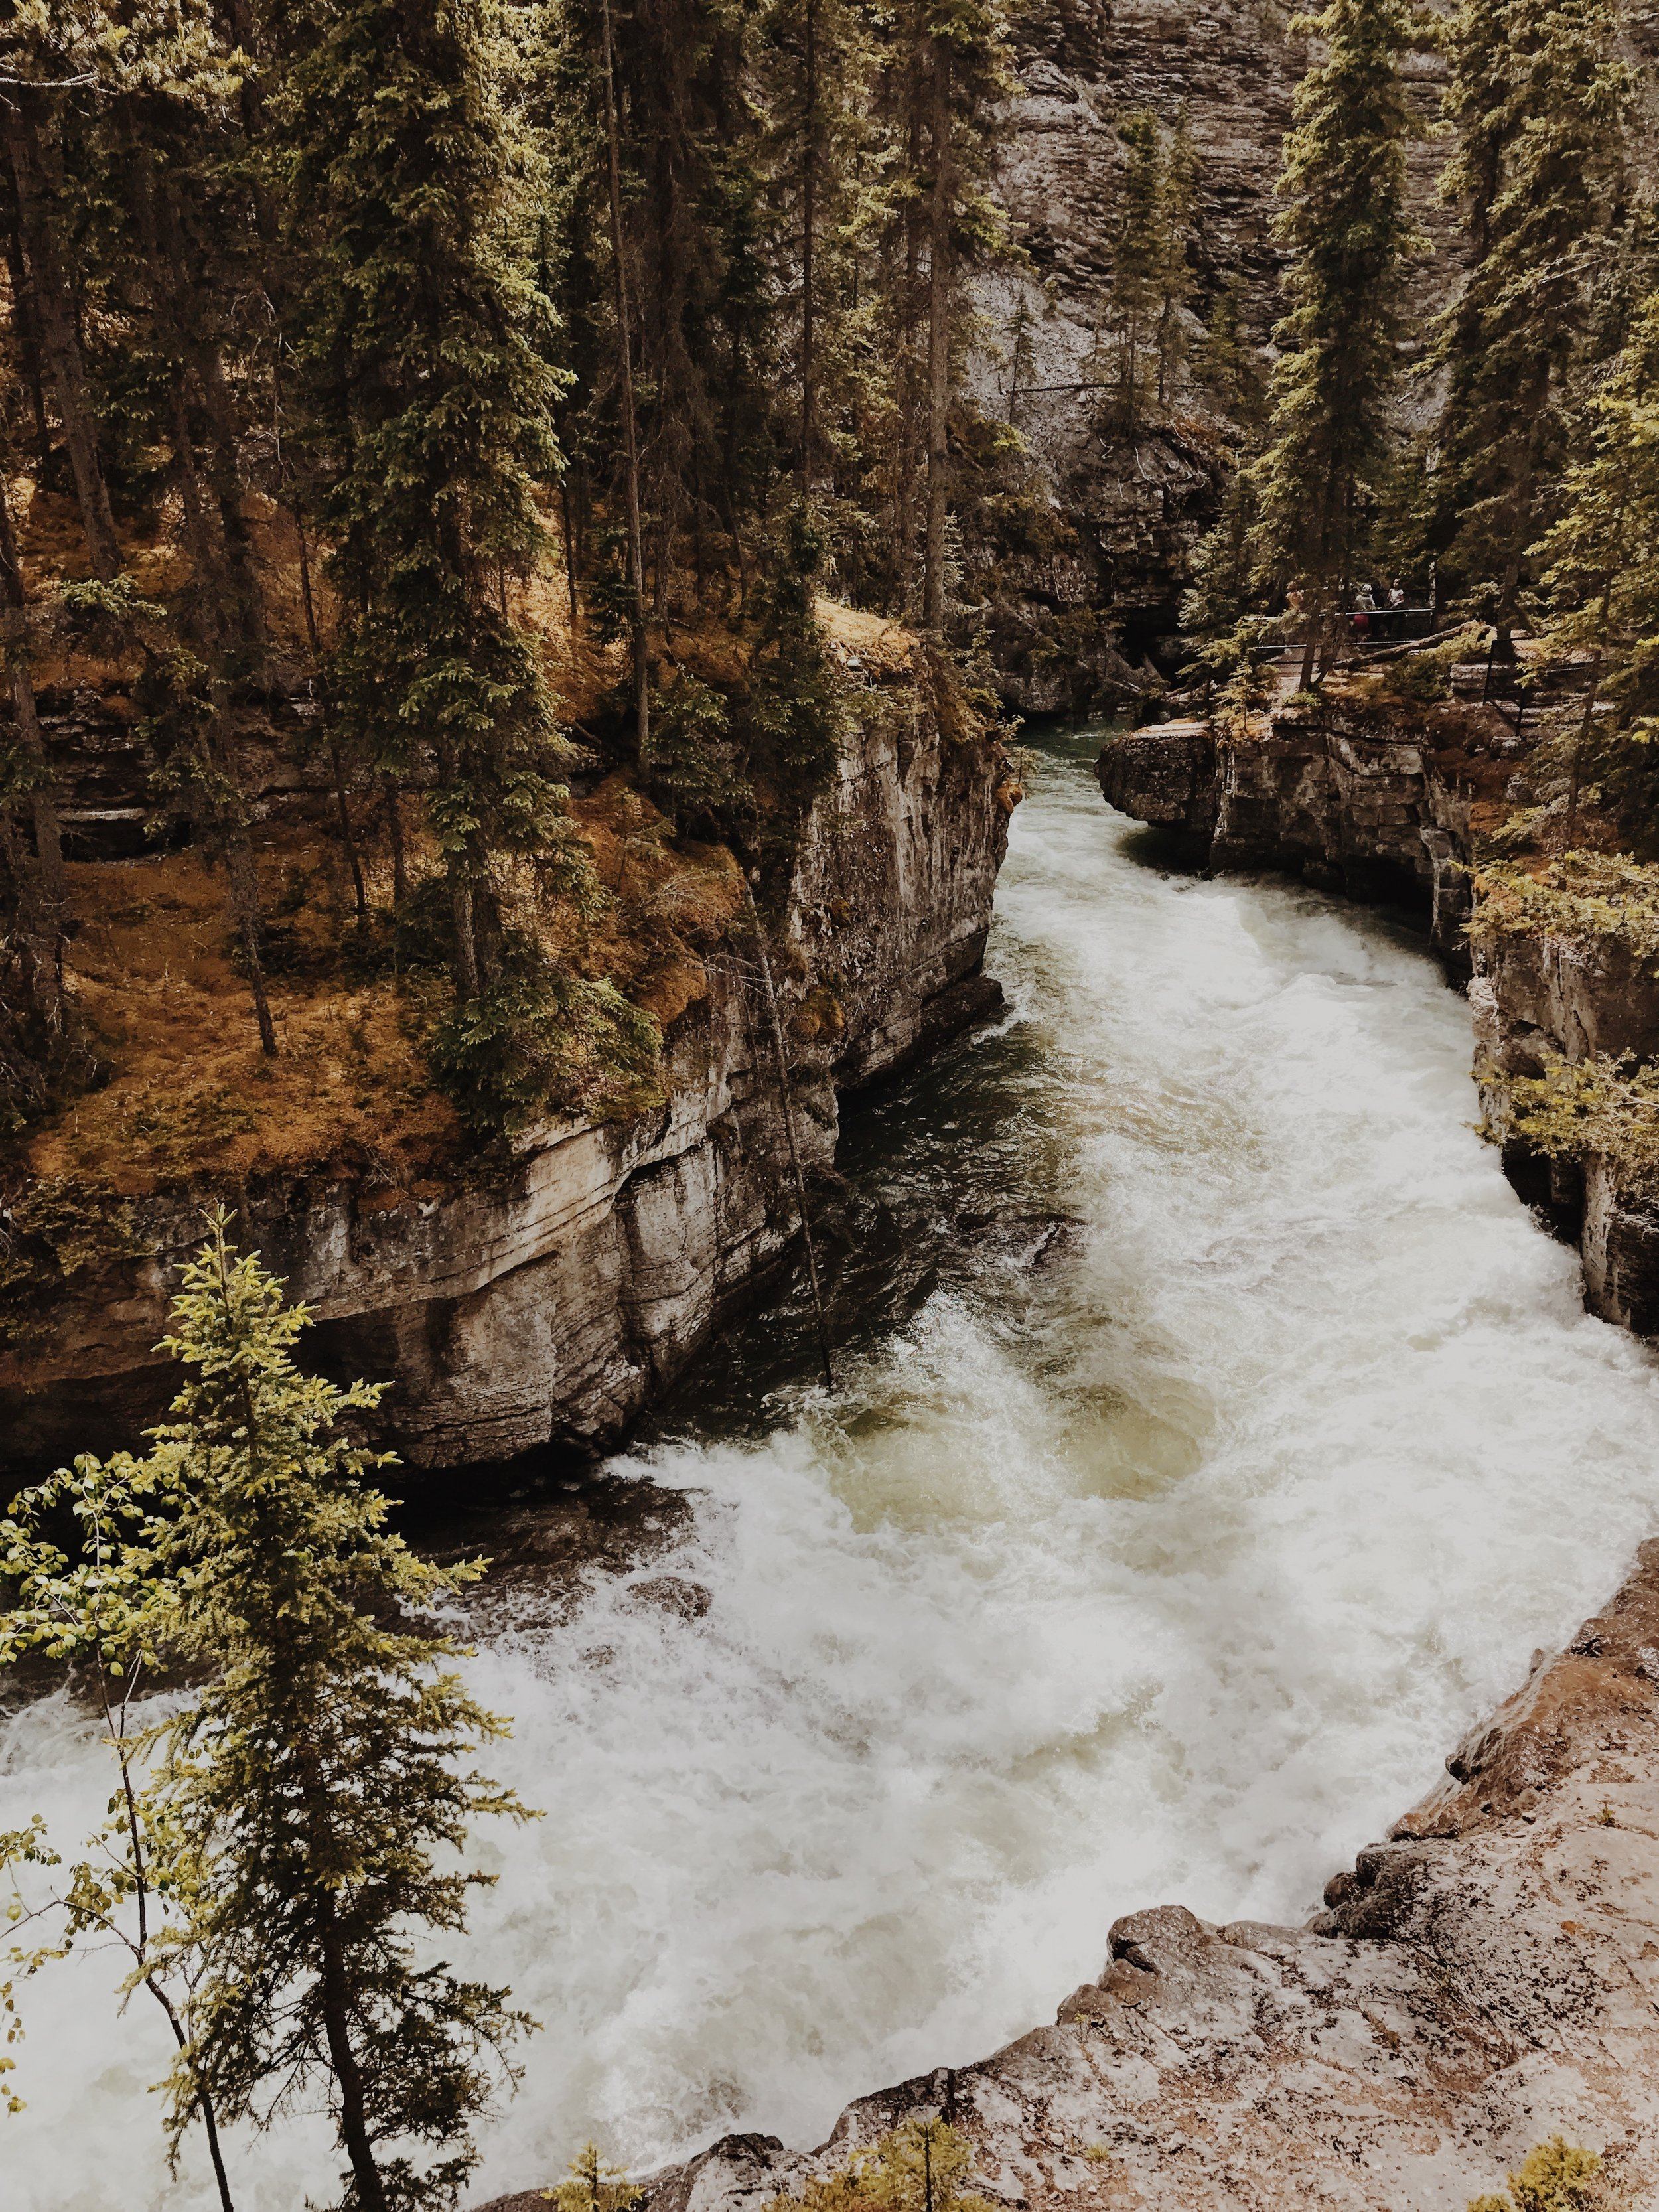 The hike alongside Maligne Canyon was stunning. All we wanted to do was keep climbing down even though we knew we had to climb back up.